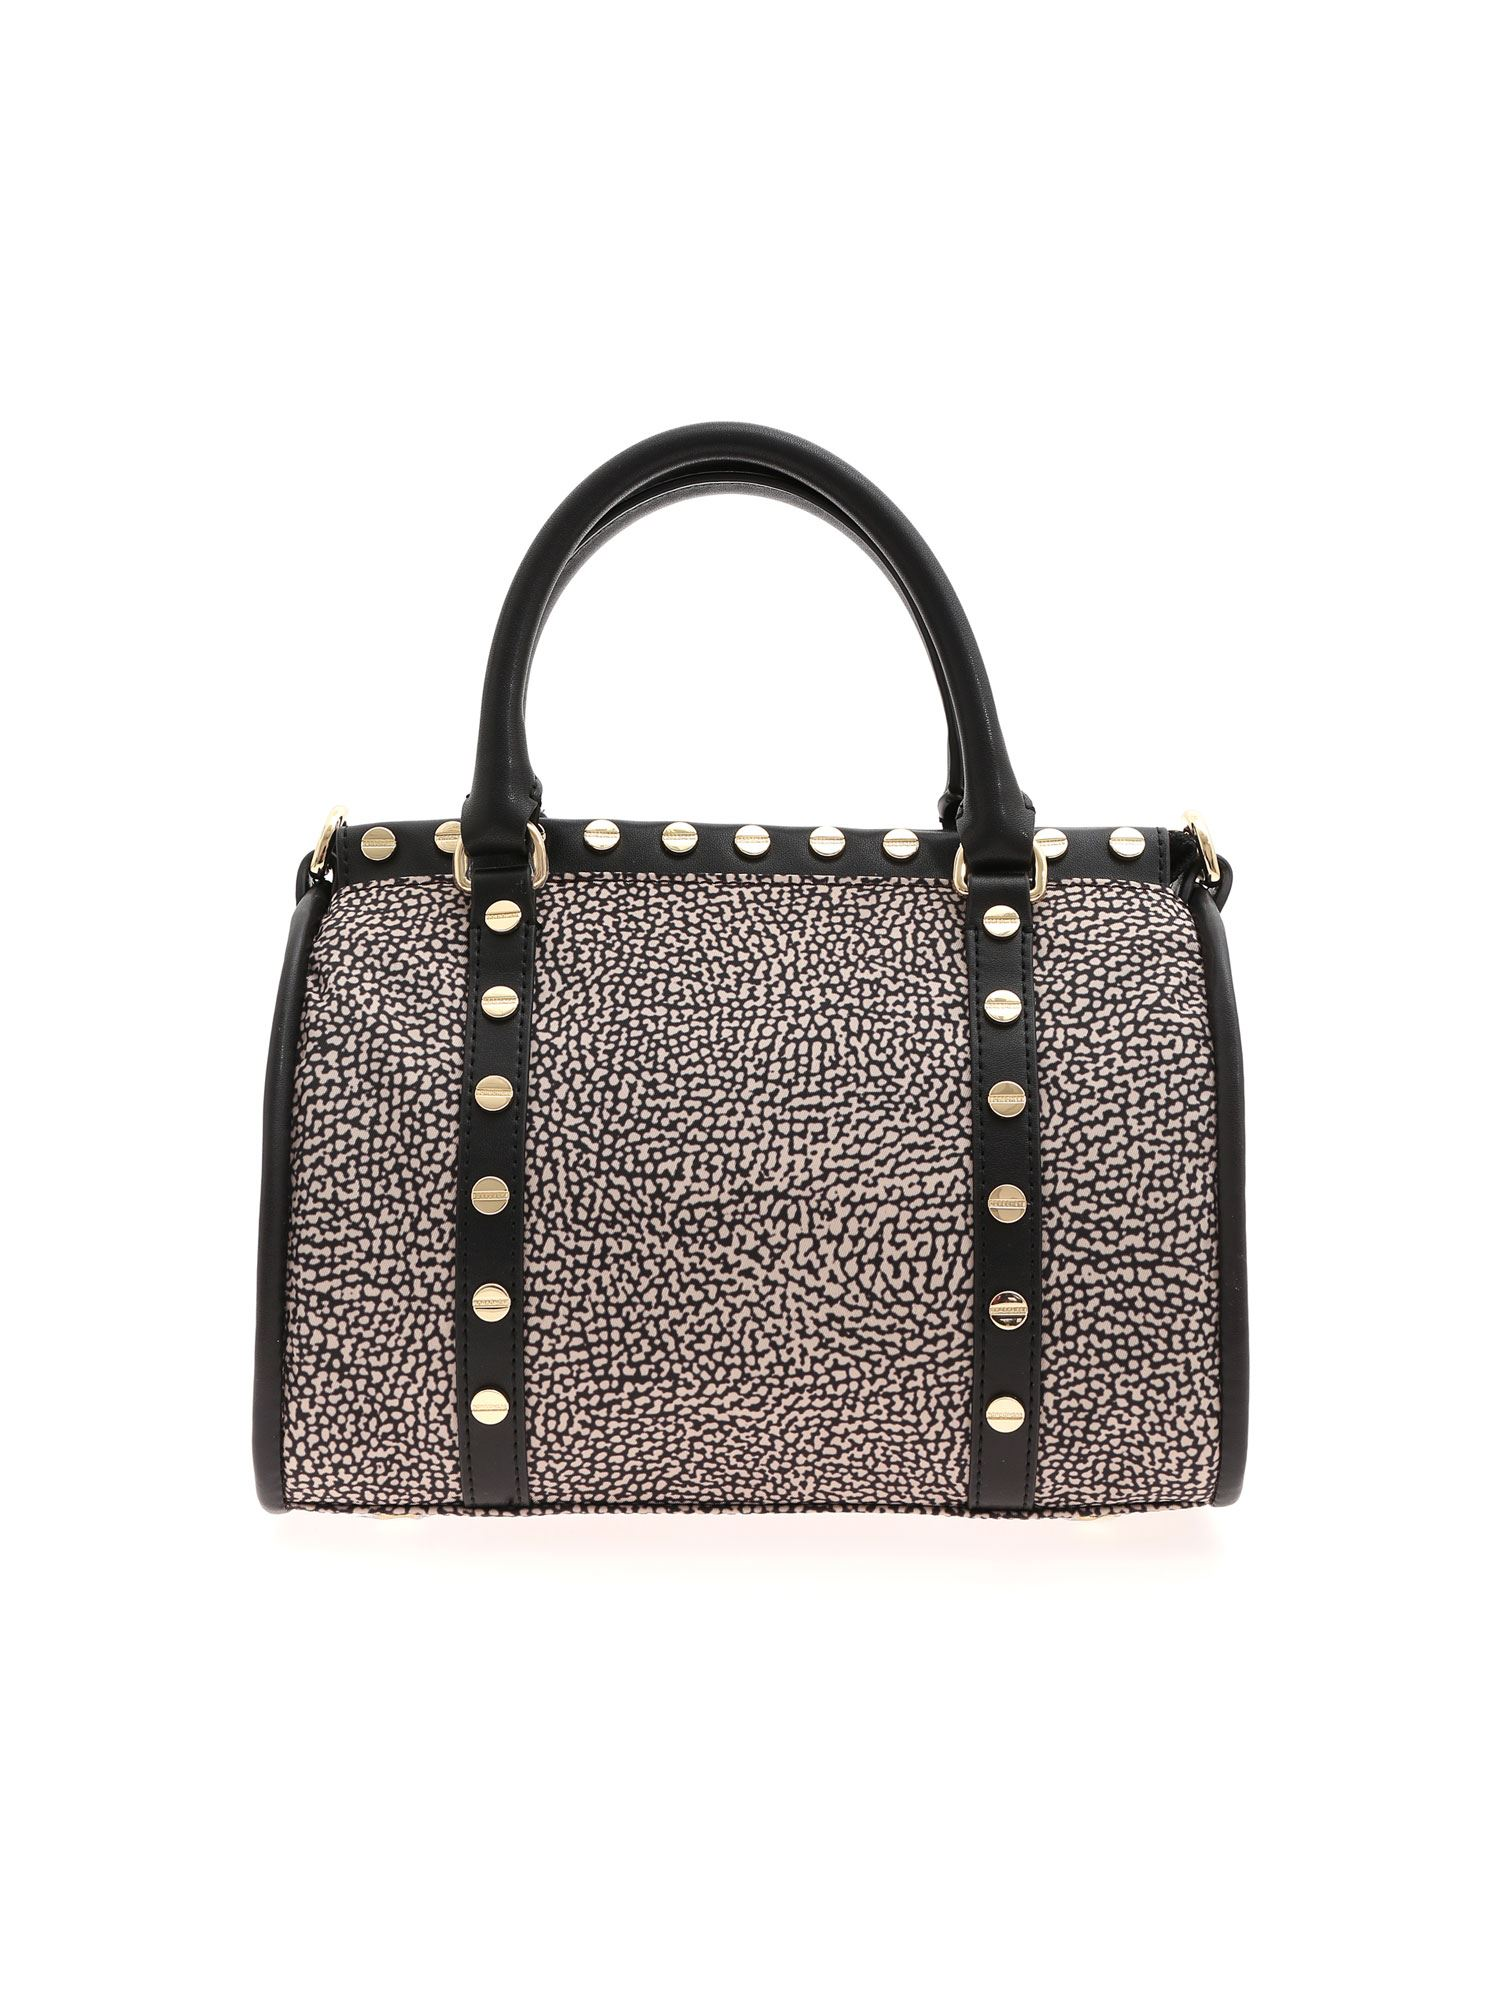 Borbonese Op Print Handbag In Black And Beige